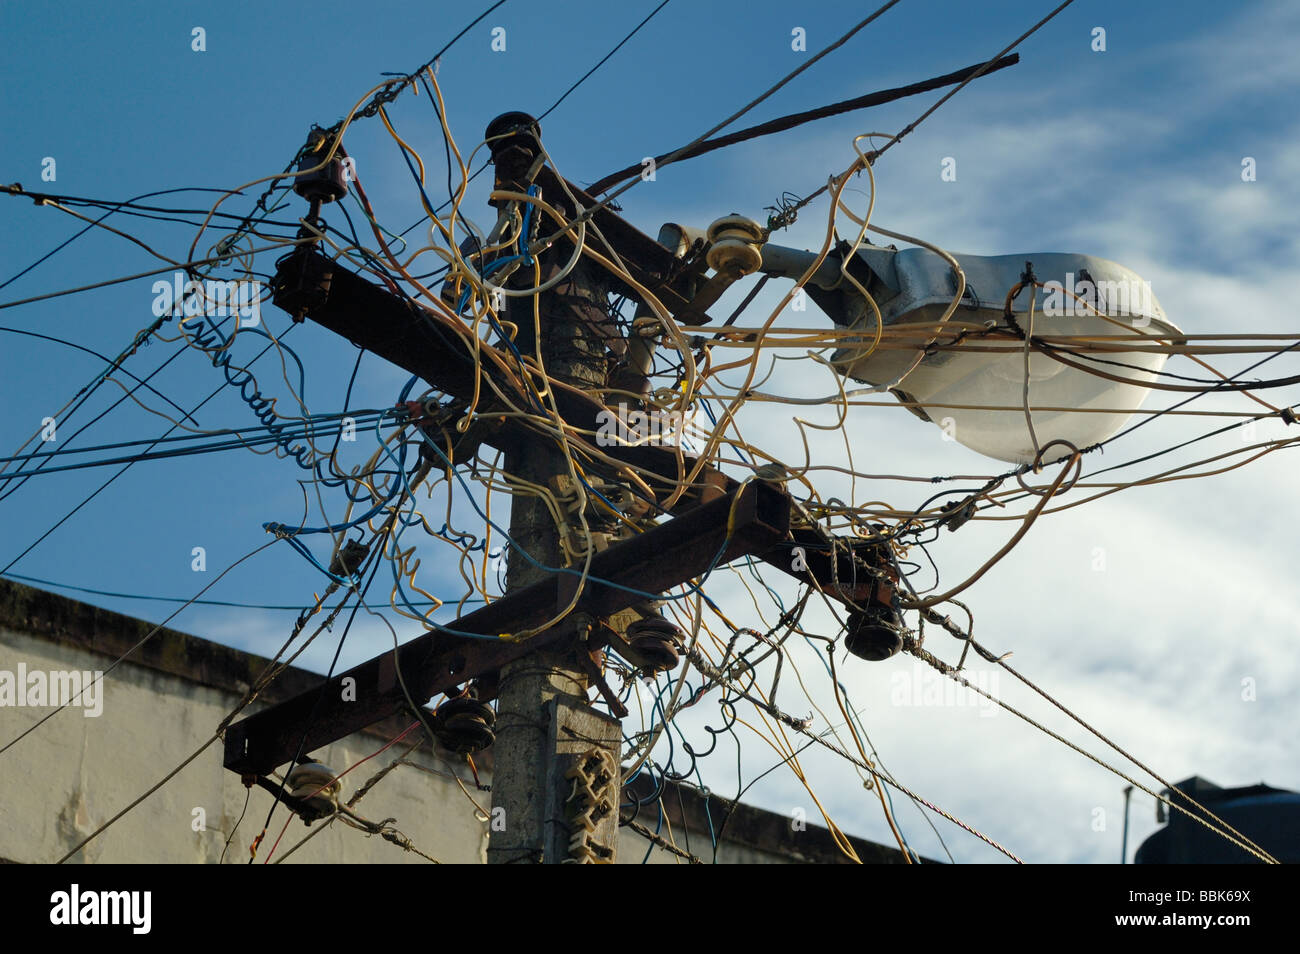 hight resolution of indian wiring stock photos indian wiring stock images alamy crazy wiring in india typical indian